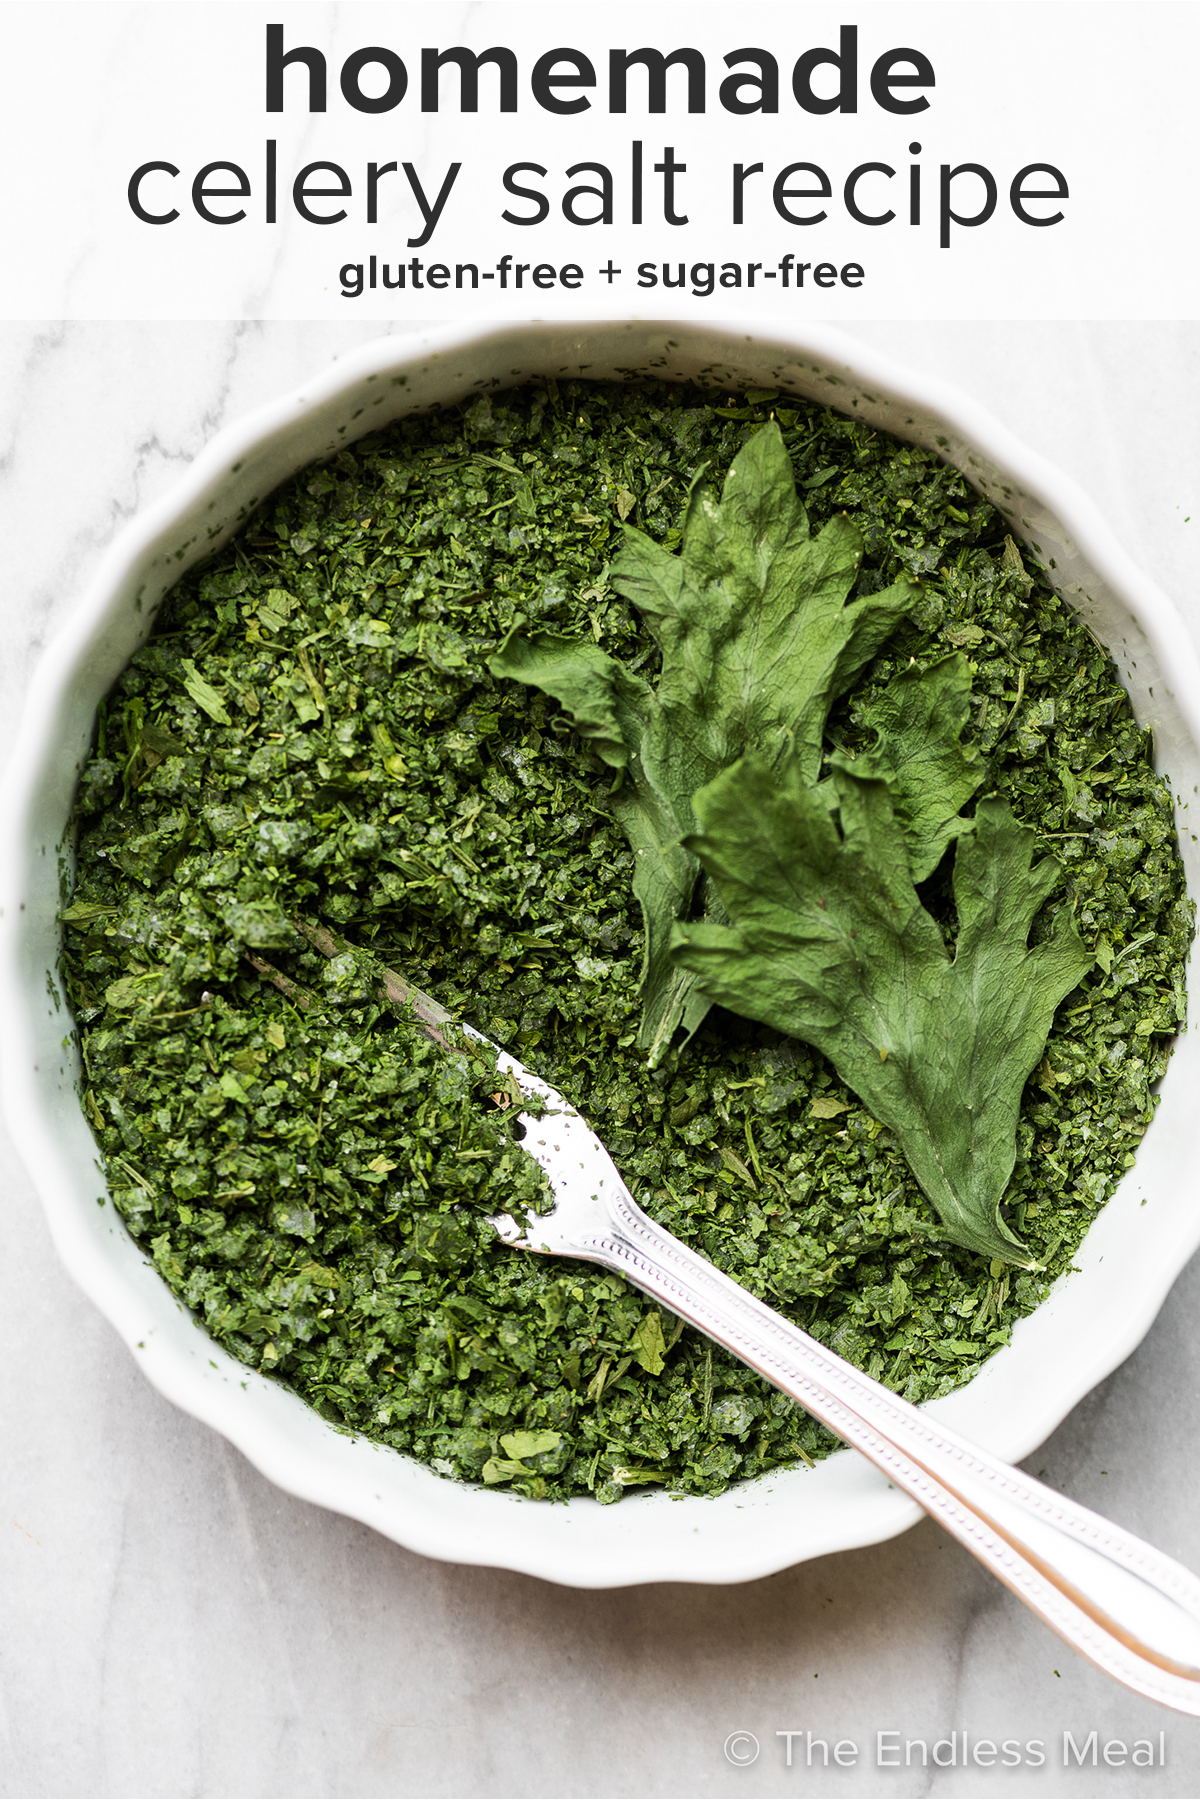 Celery leaf salt in a mixing bowl with the recipe title on top of the picture.